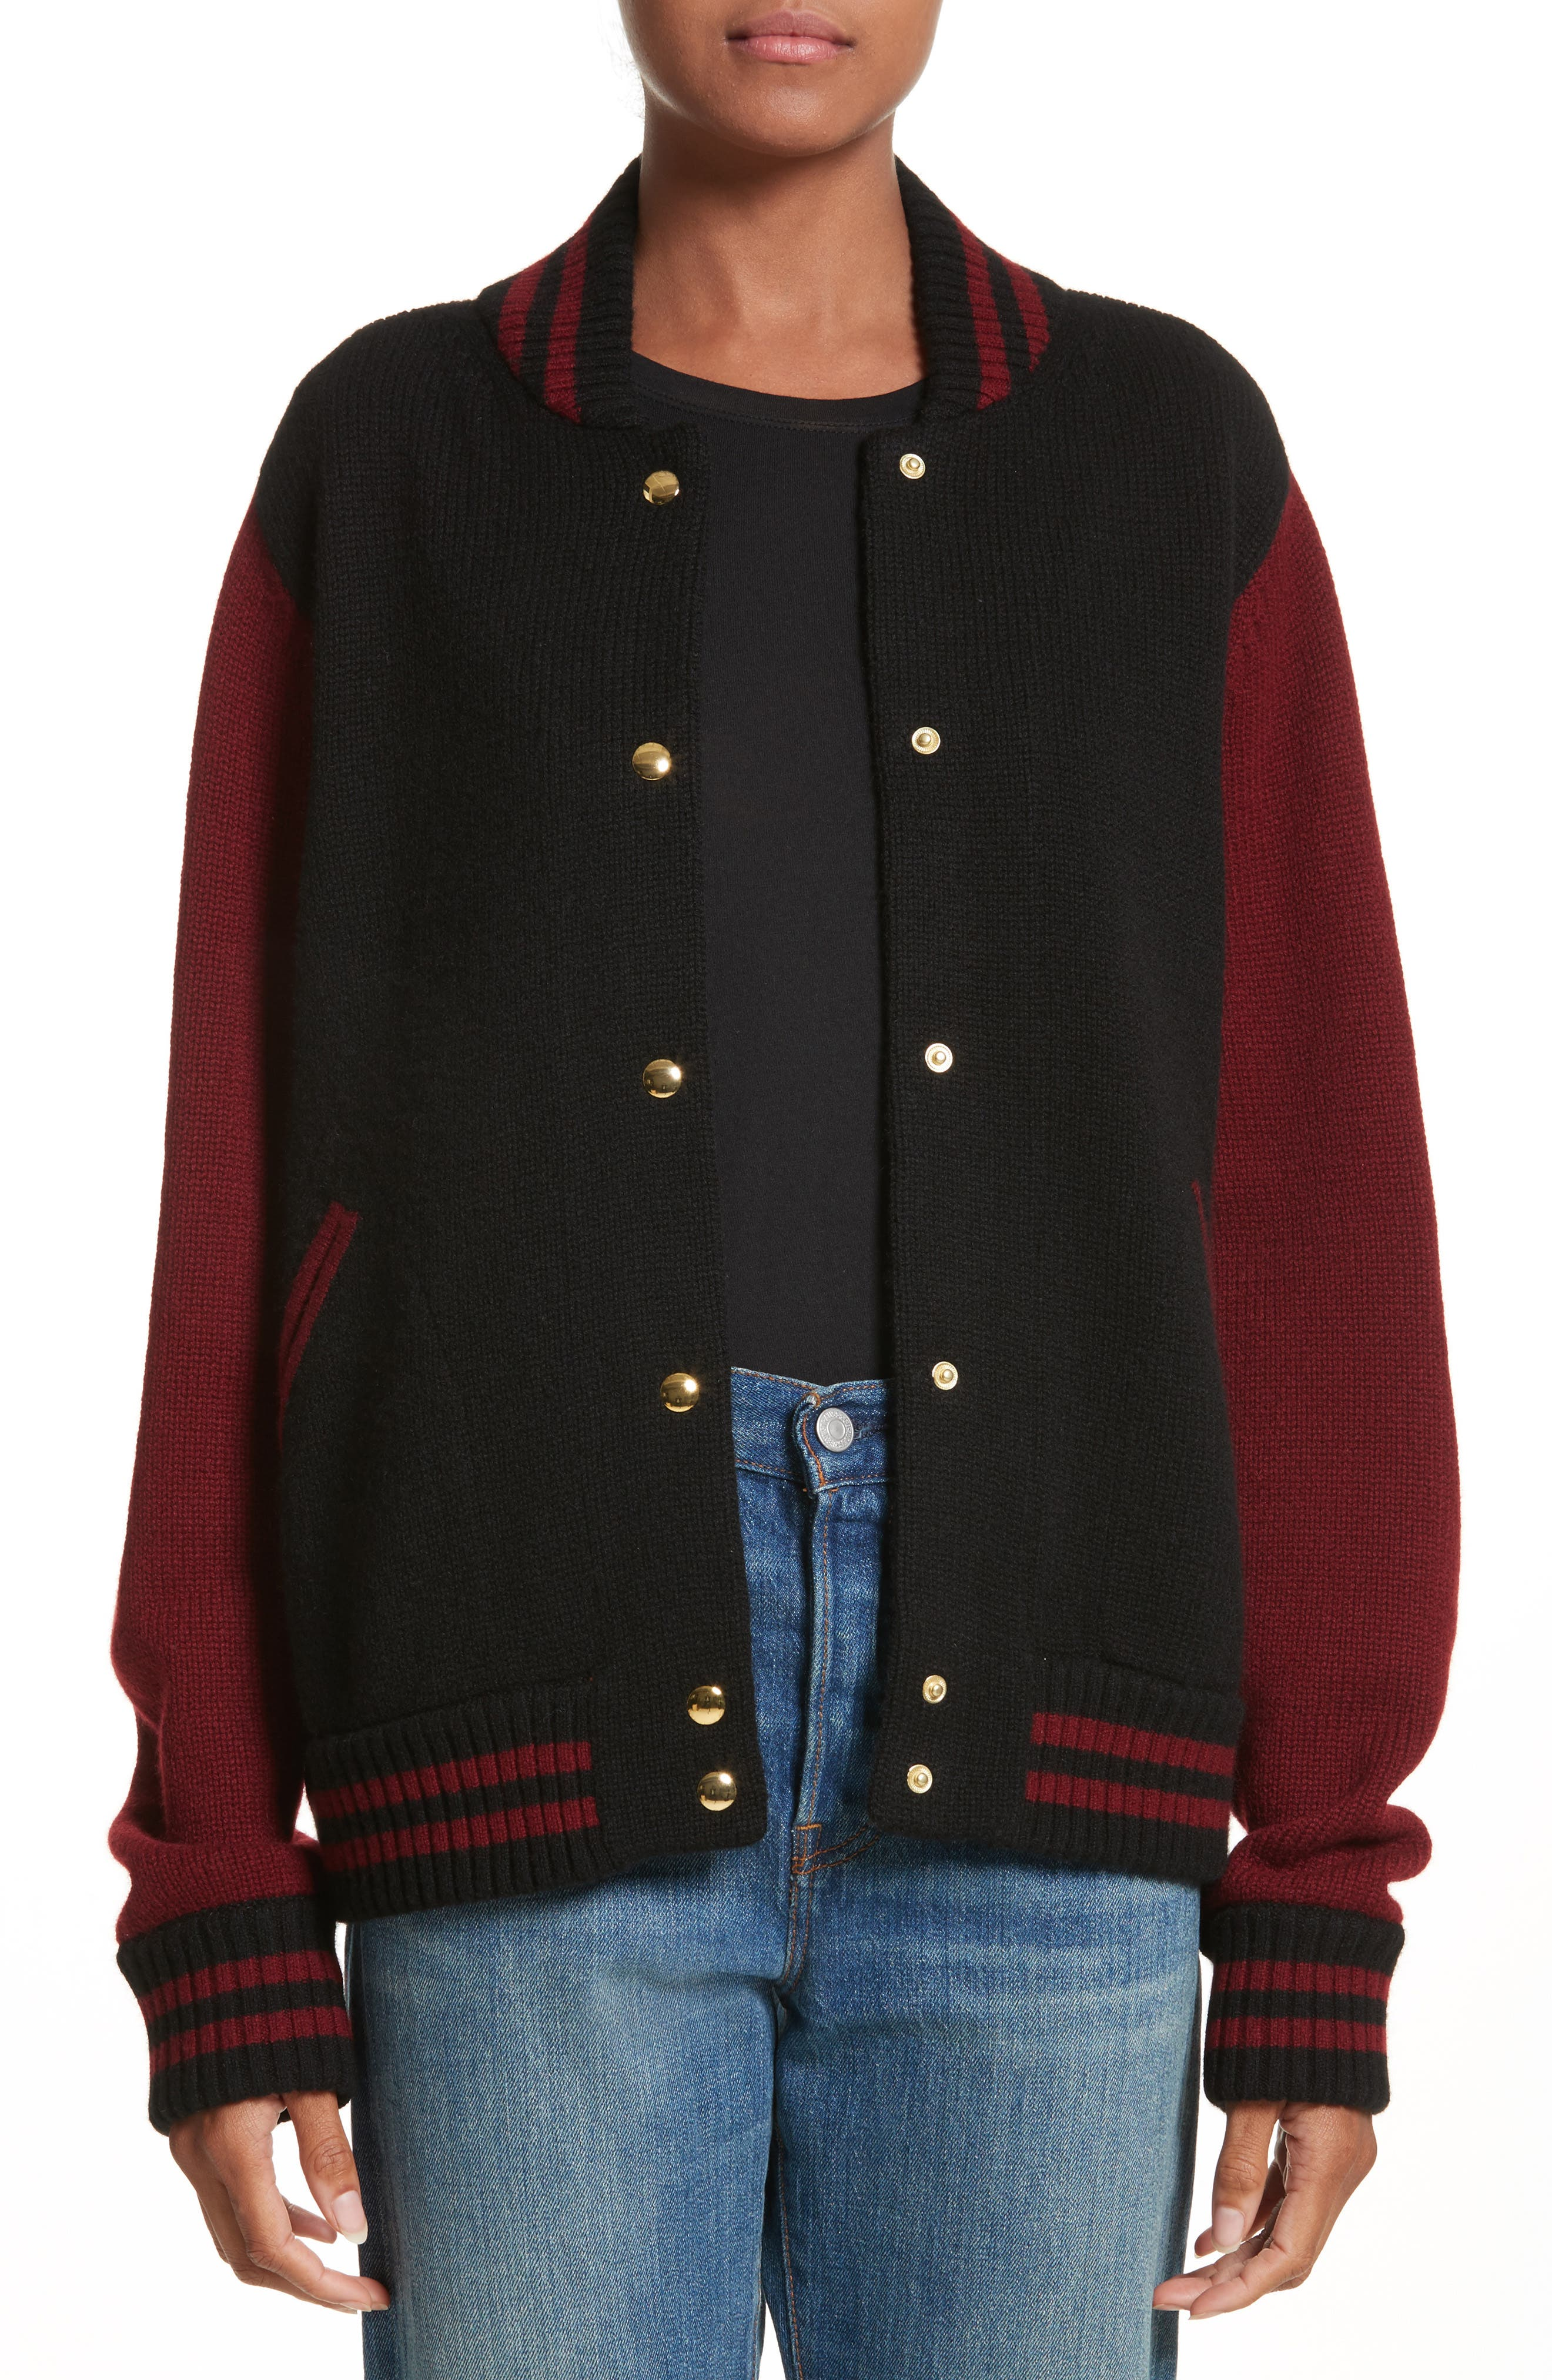 MARC JACOBS Wool & Cashmere Knit Varsity Jacket